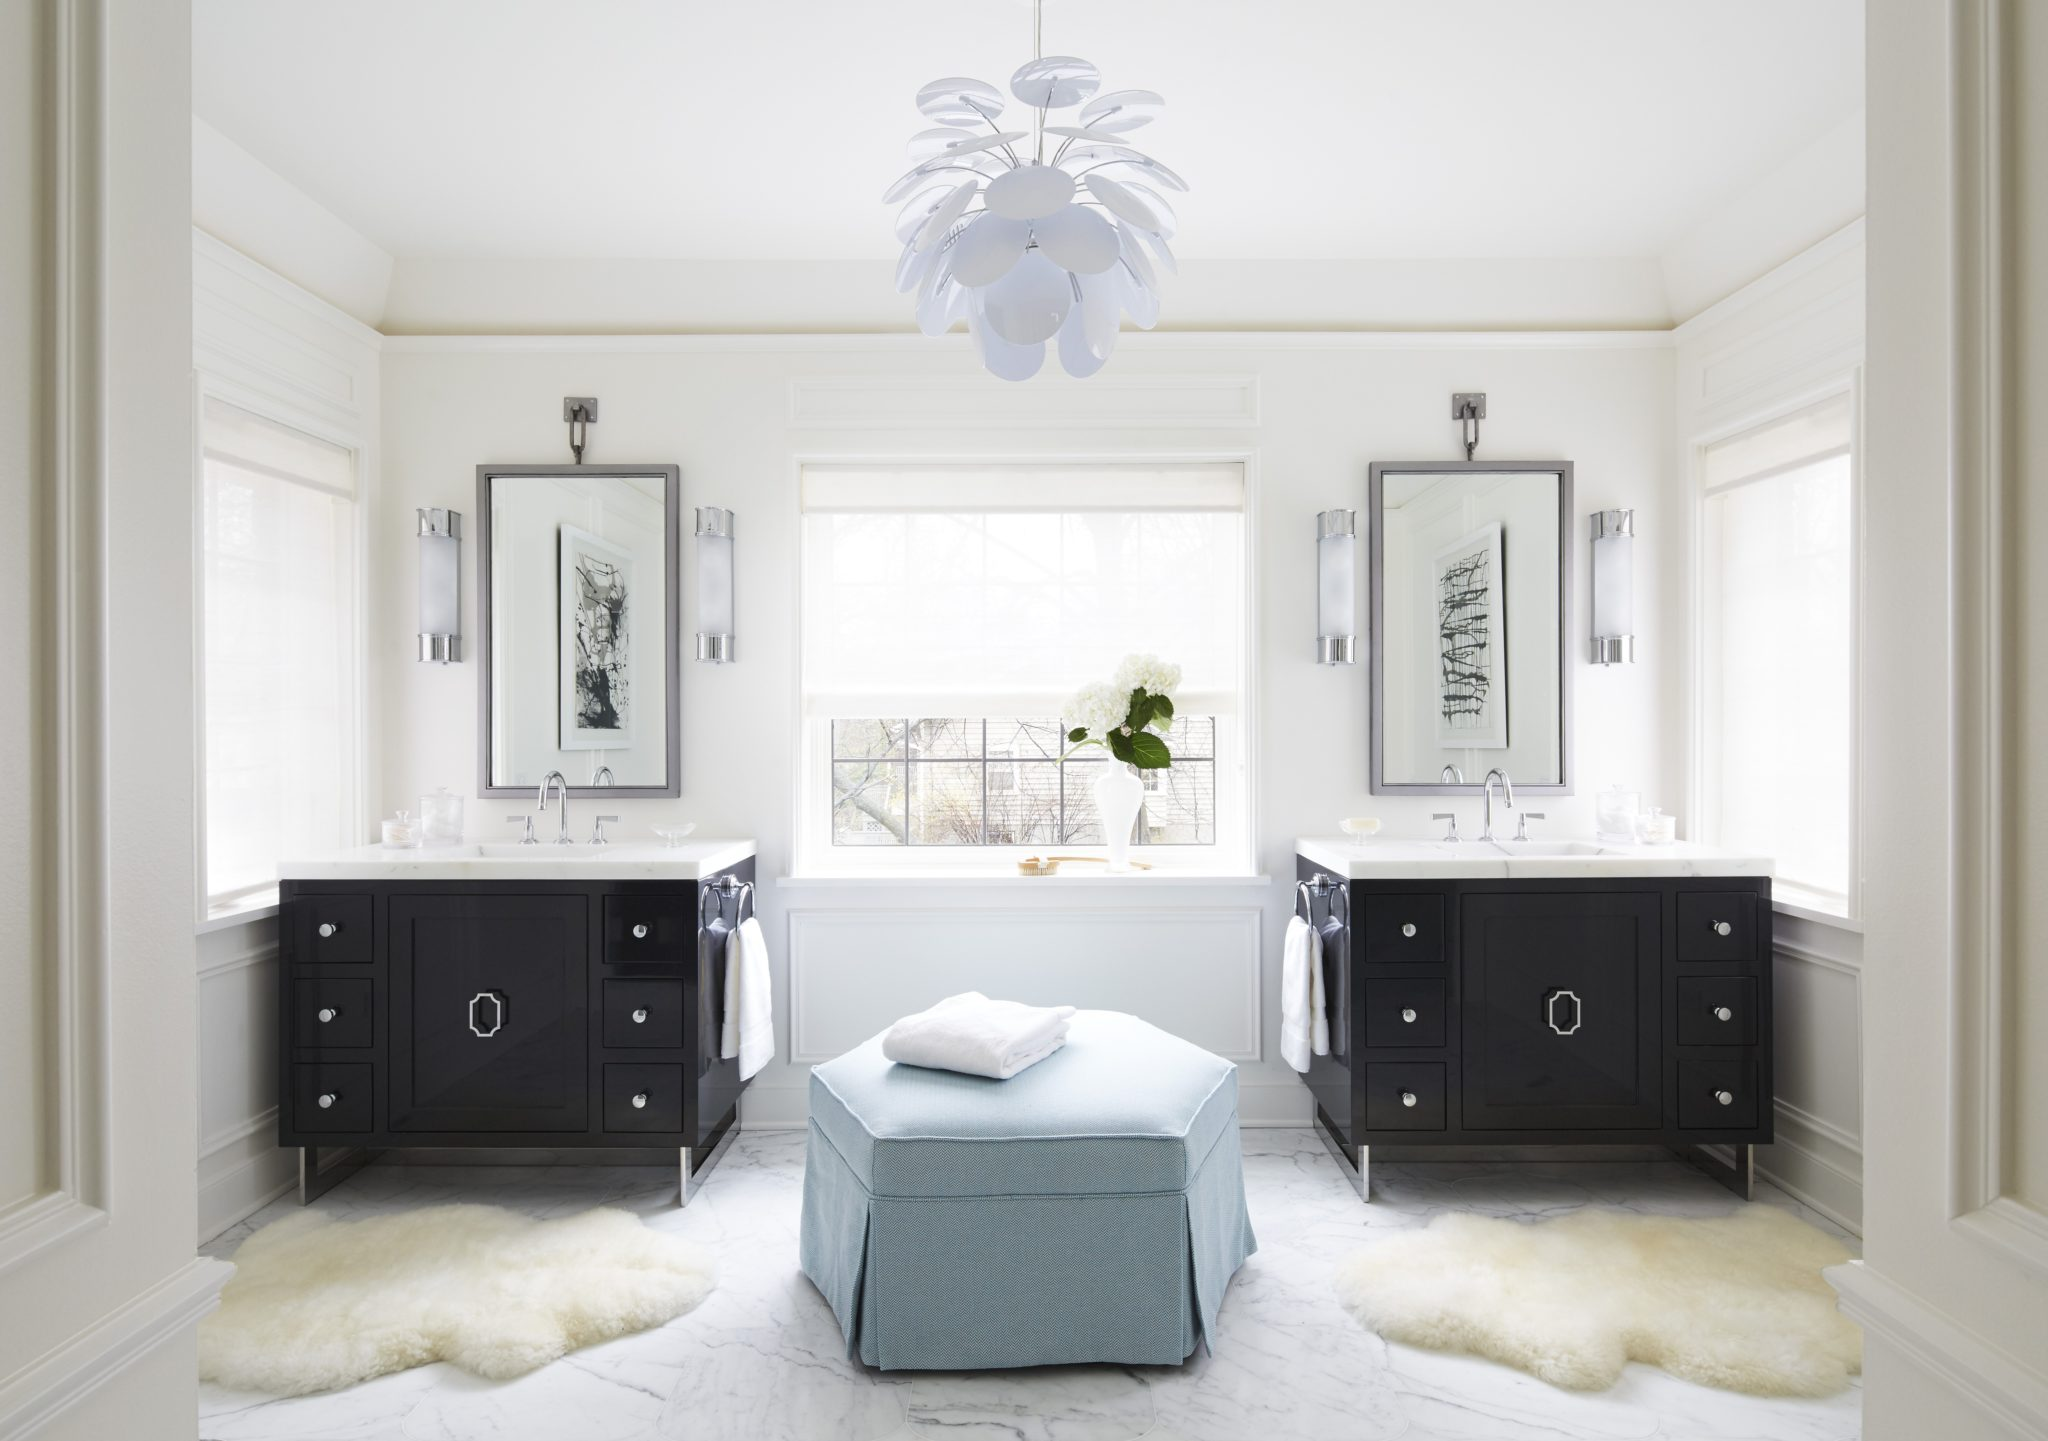 Master Bathroom with custom lacquer vanities by Amy Kartheiser Design